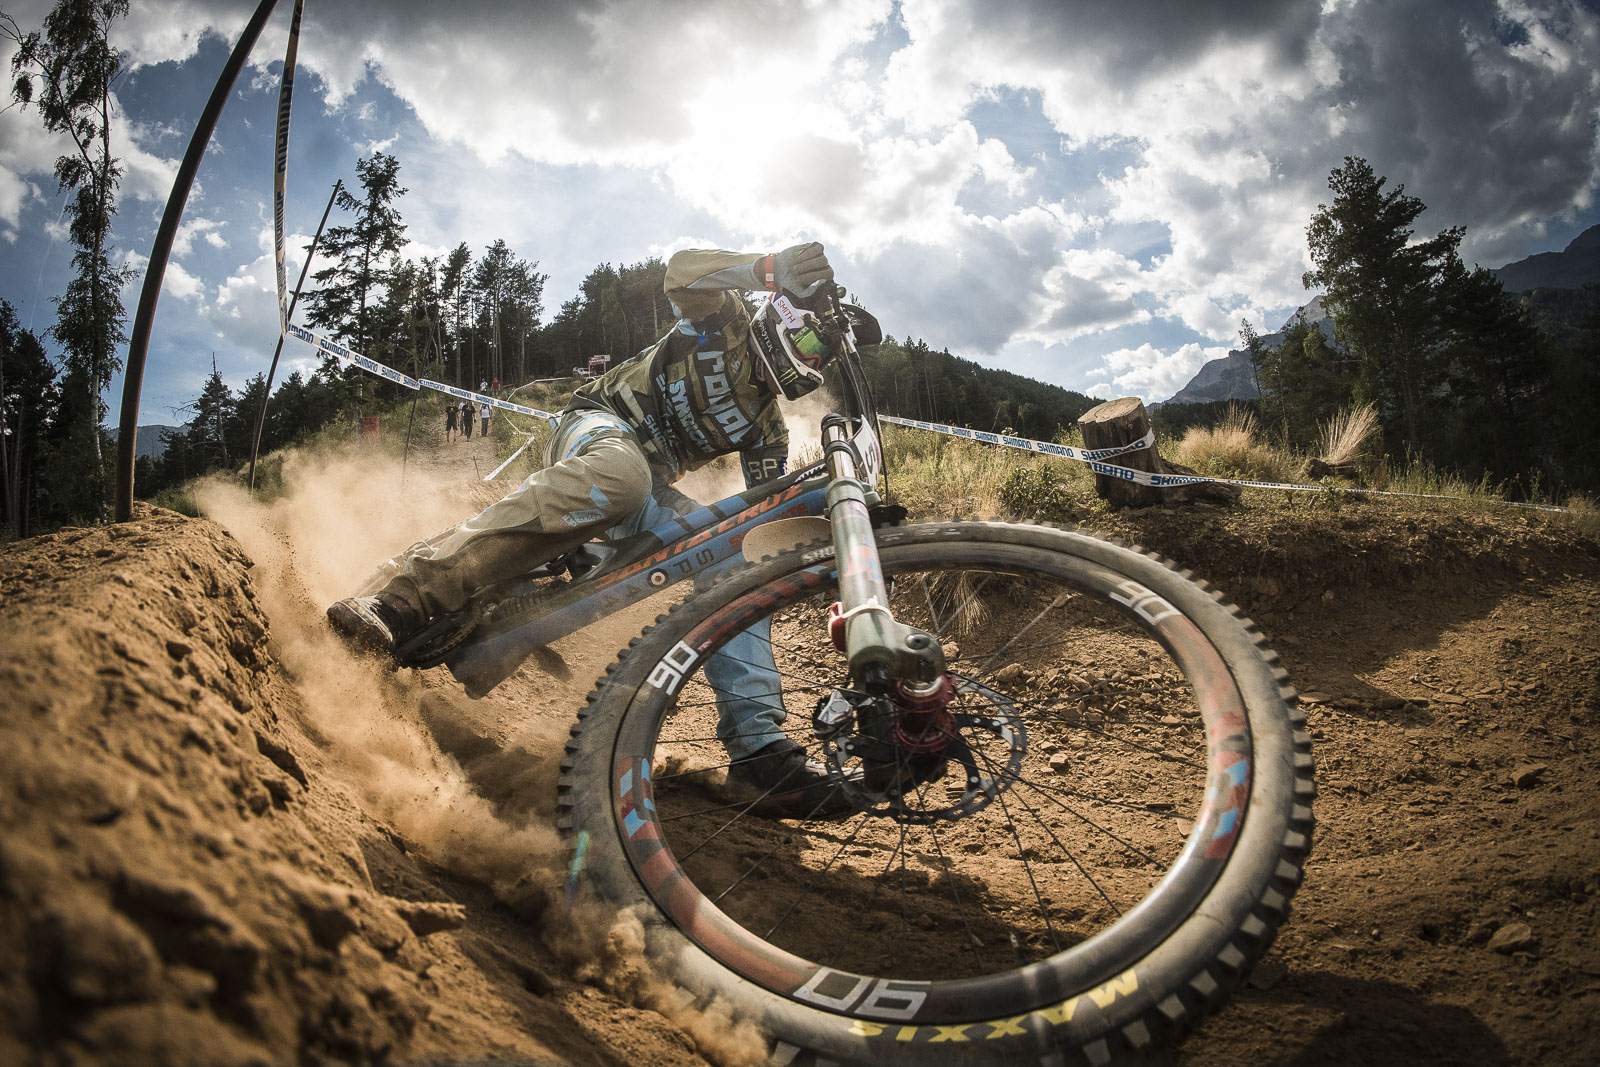 Steve Peat is looking on the pace this weekend while all his friends are off battling it out at masters world champs